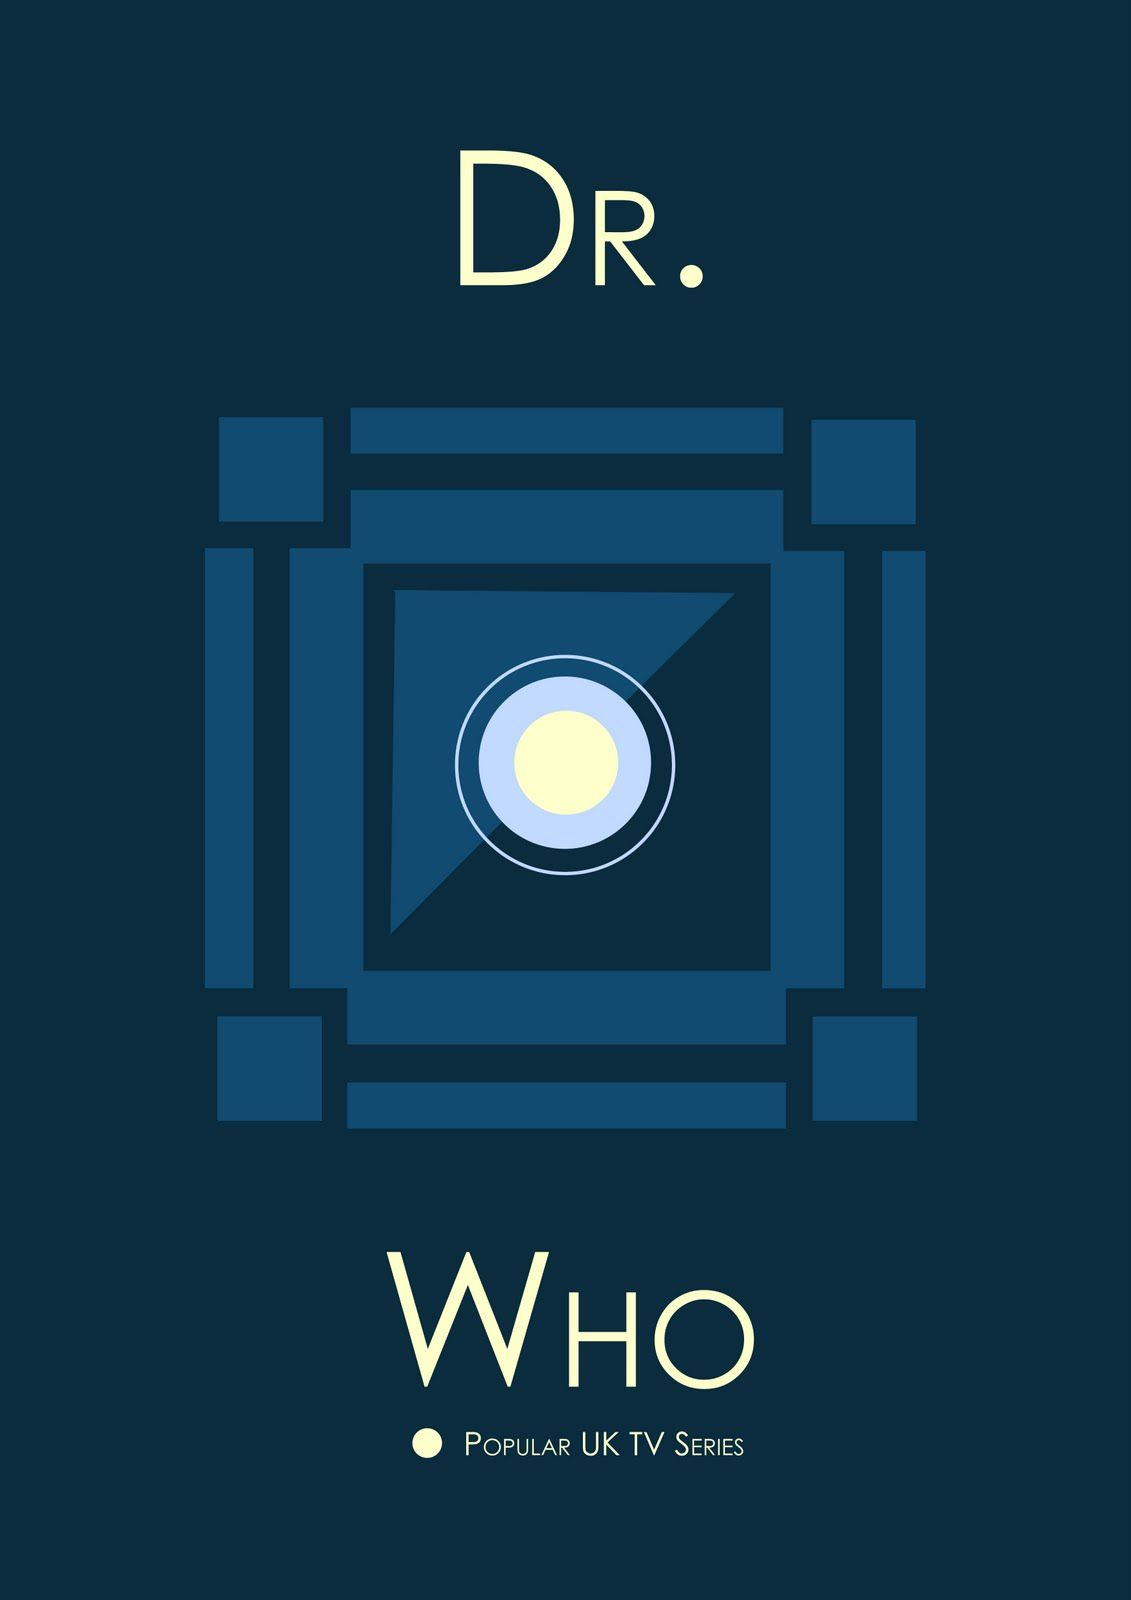 Dr Who Minimalist Poster Tv Serie Show Uk Tv Shows Minimalist Poster Doctor Who Art